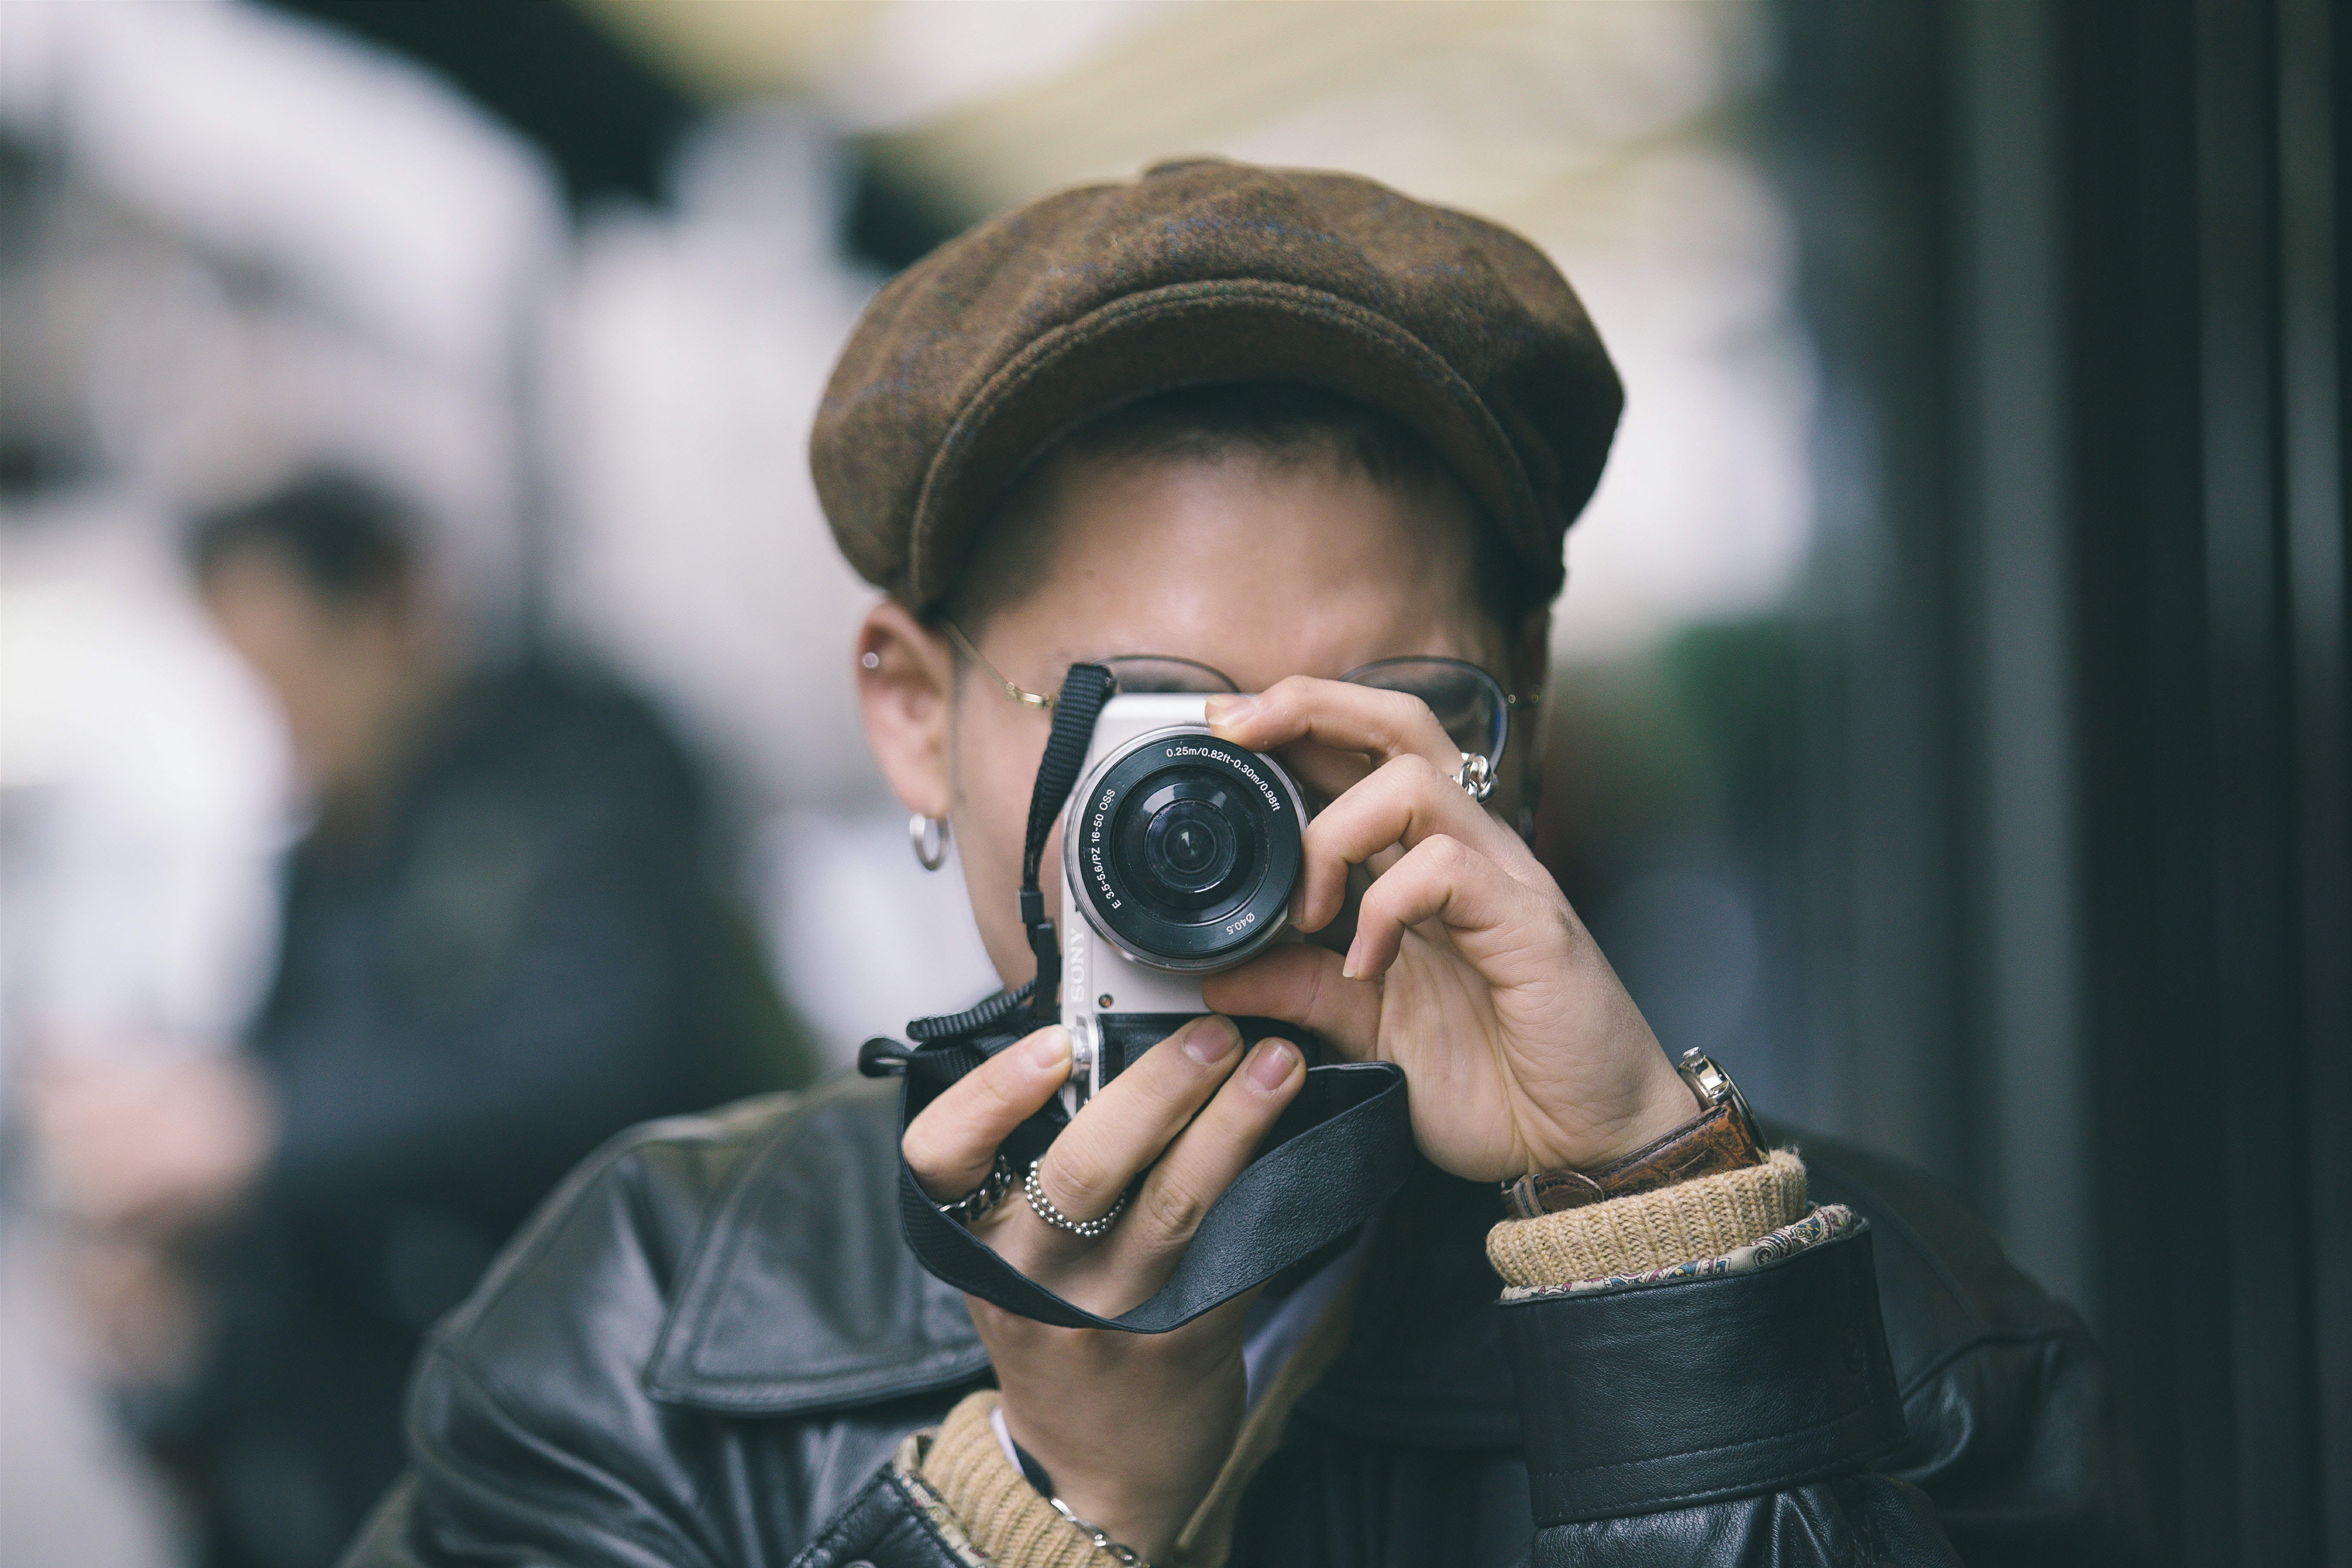 focus photography of person holding camera